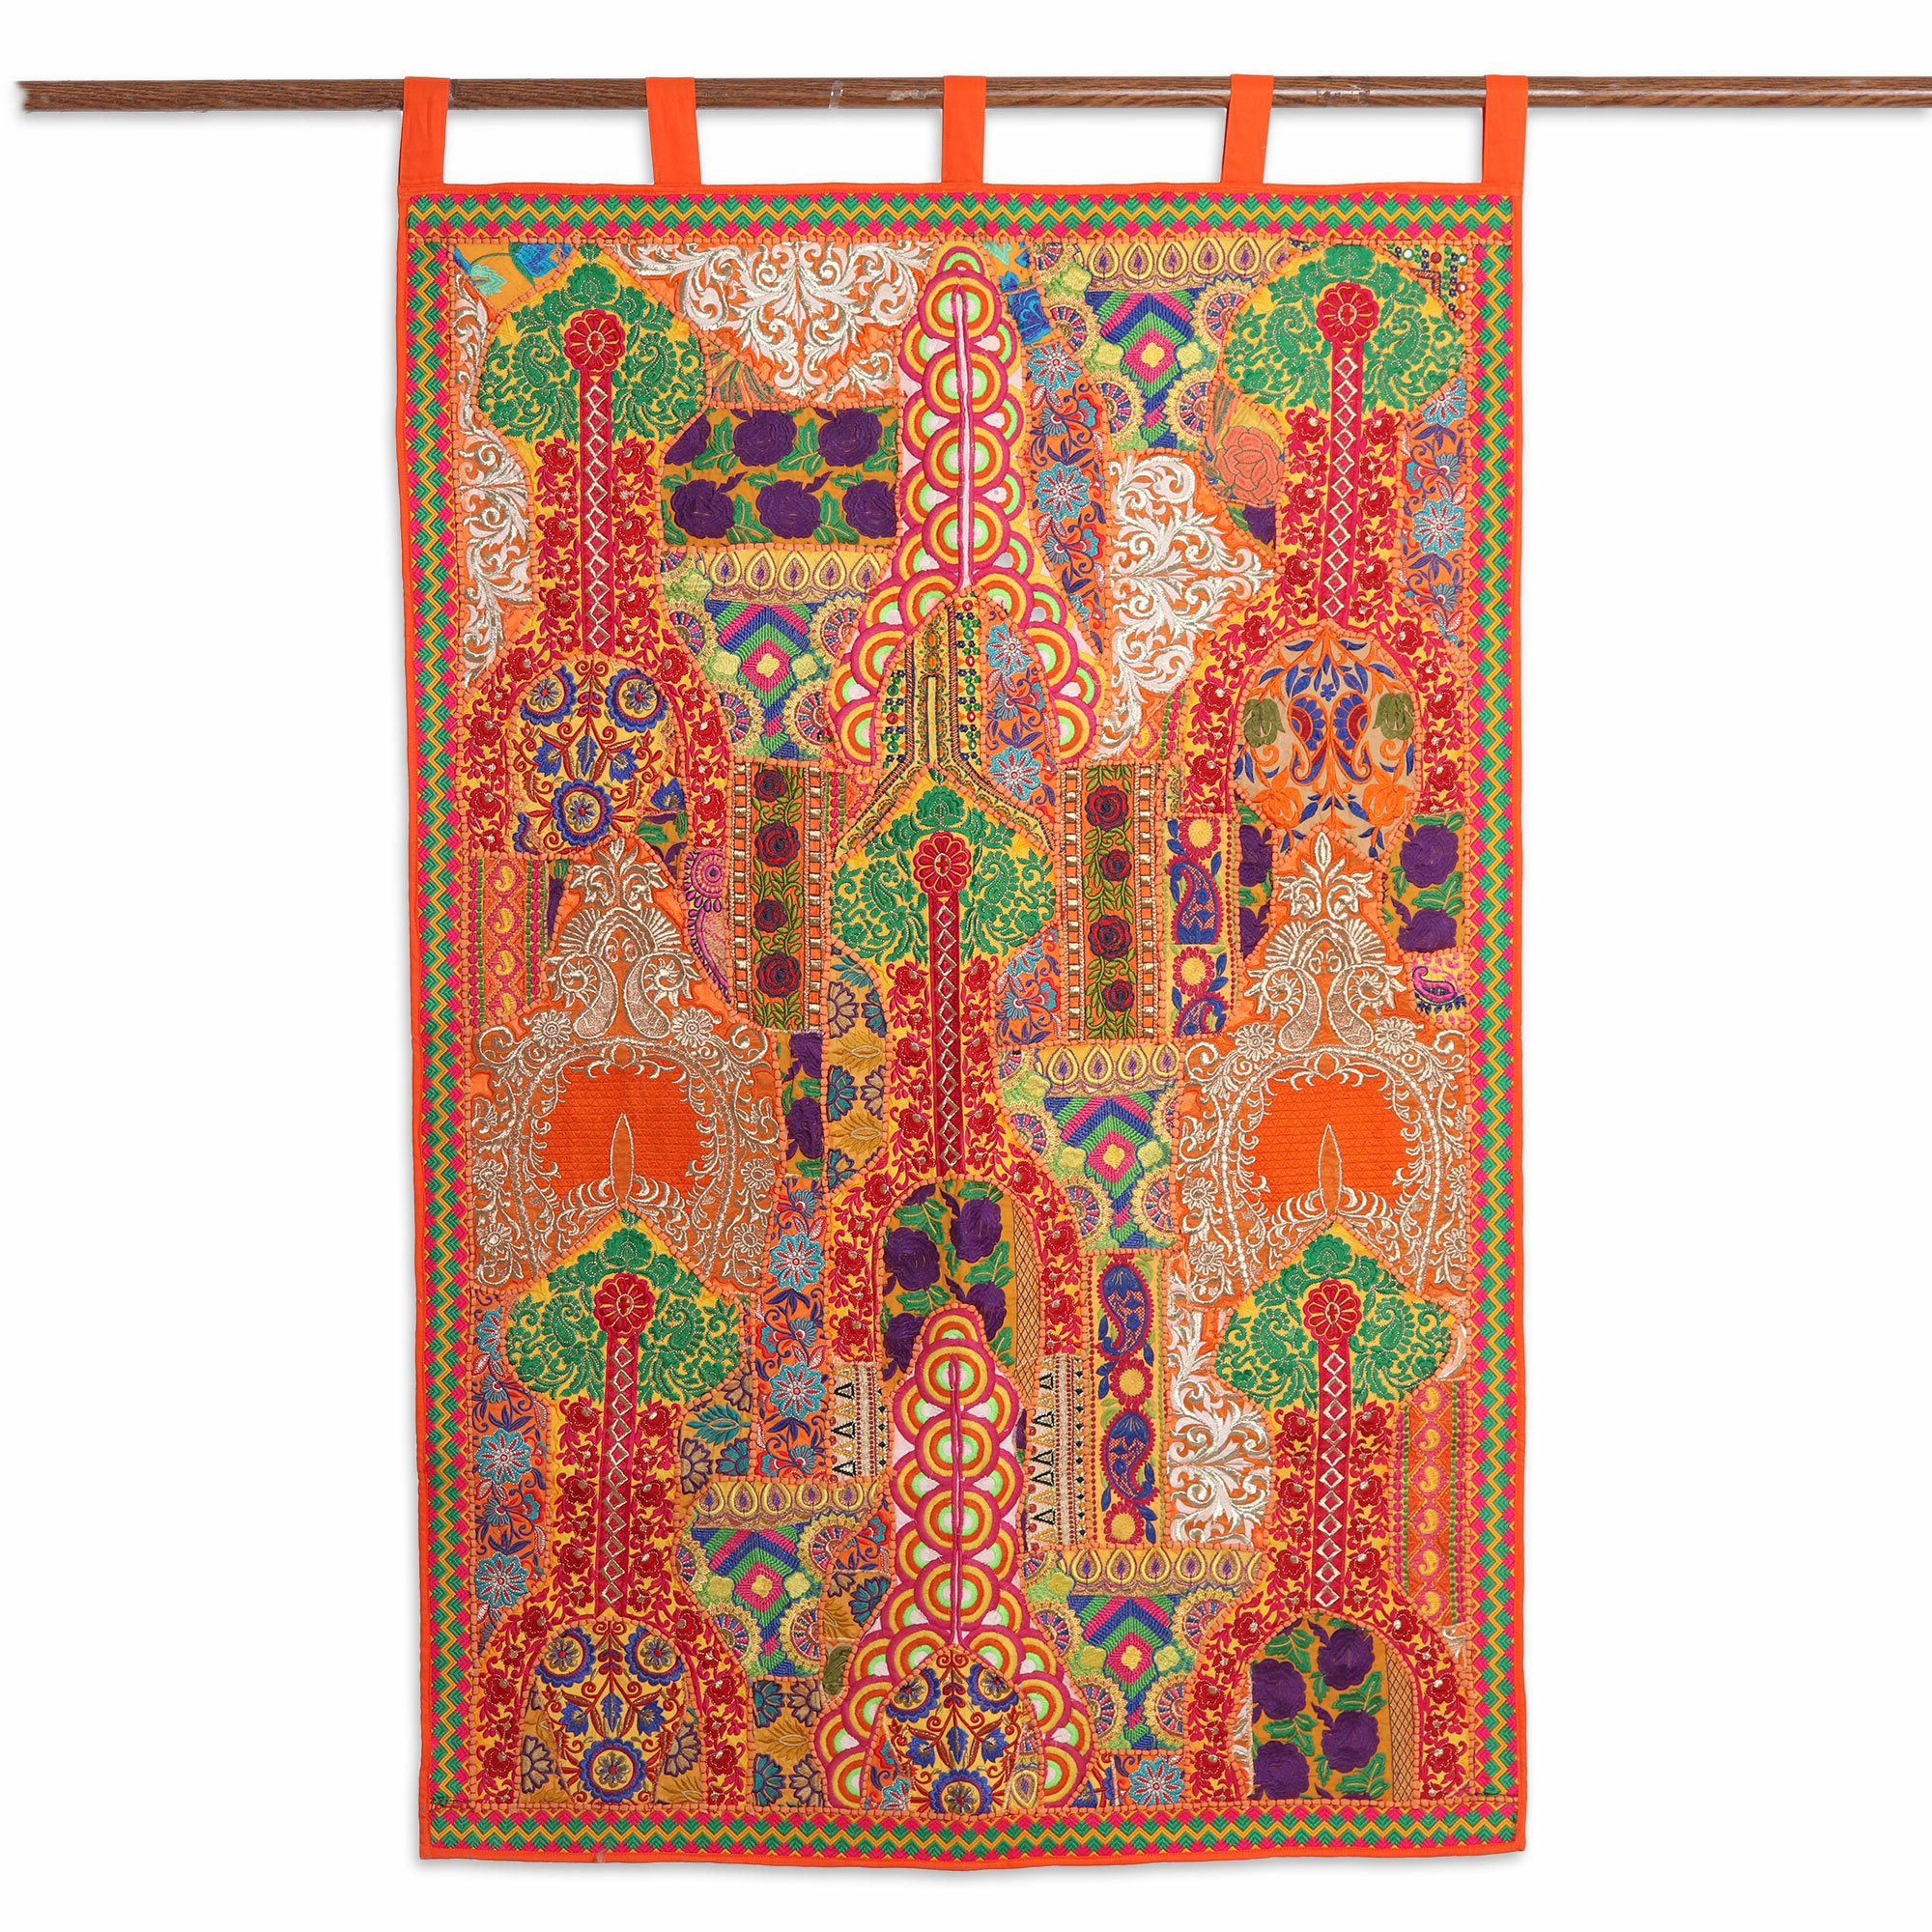 Handmade Floral Dazzle Recycled Cotton Blend Wall Hanging With Most Recently Released Blended Fabric Ranier Wall Hangings With Hanging Accessories Included (View 12 of 20)